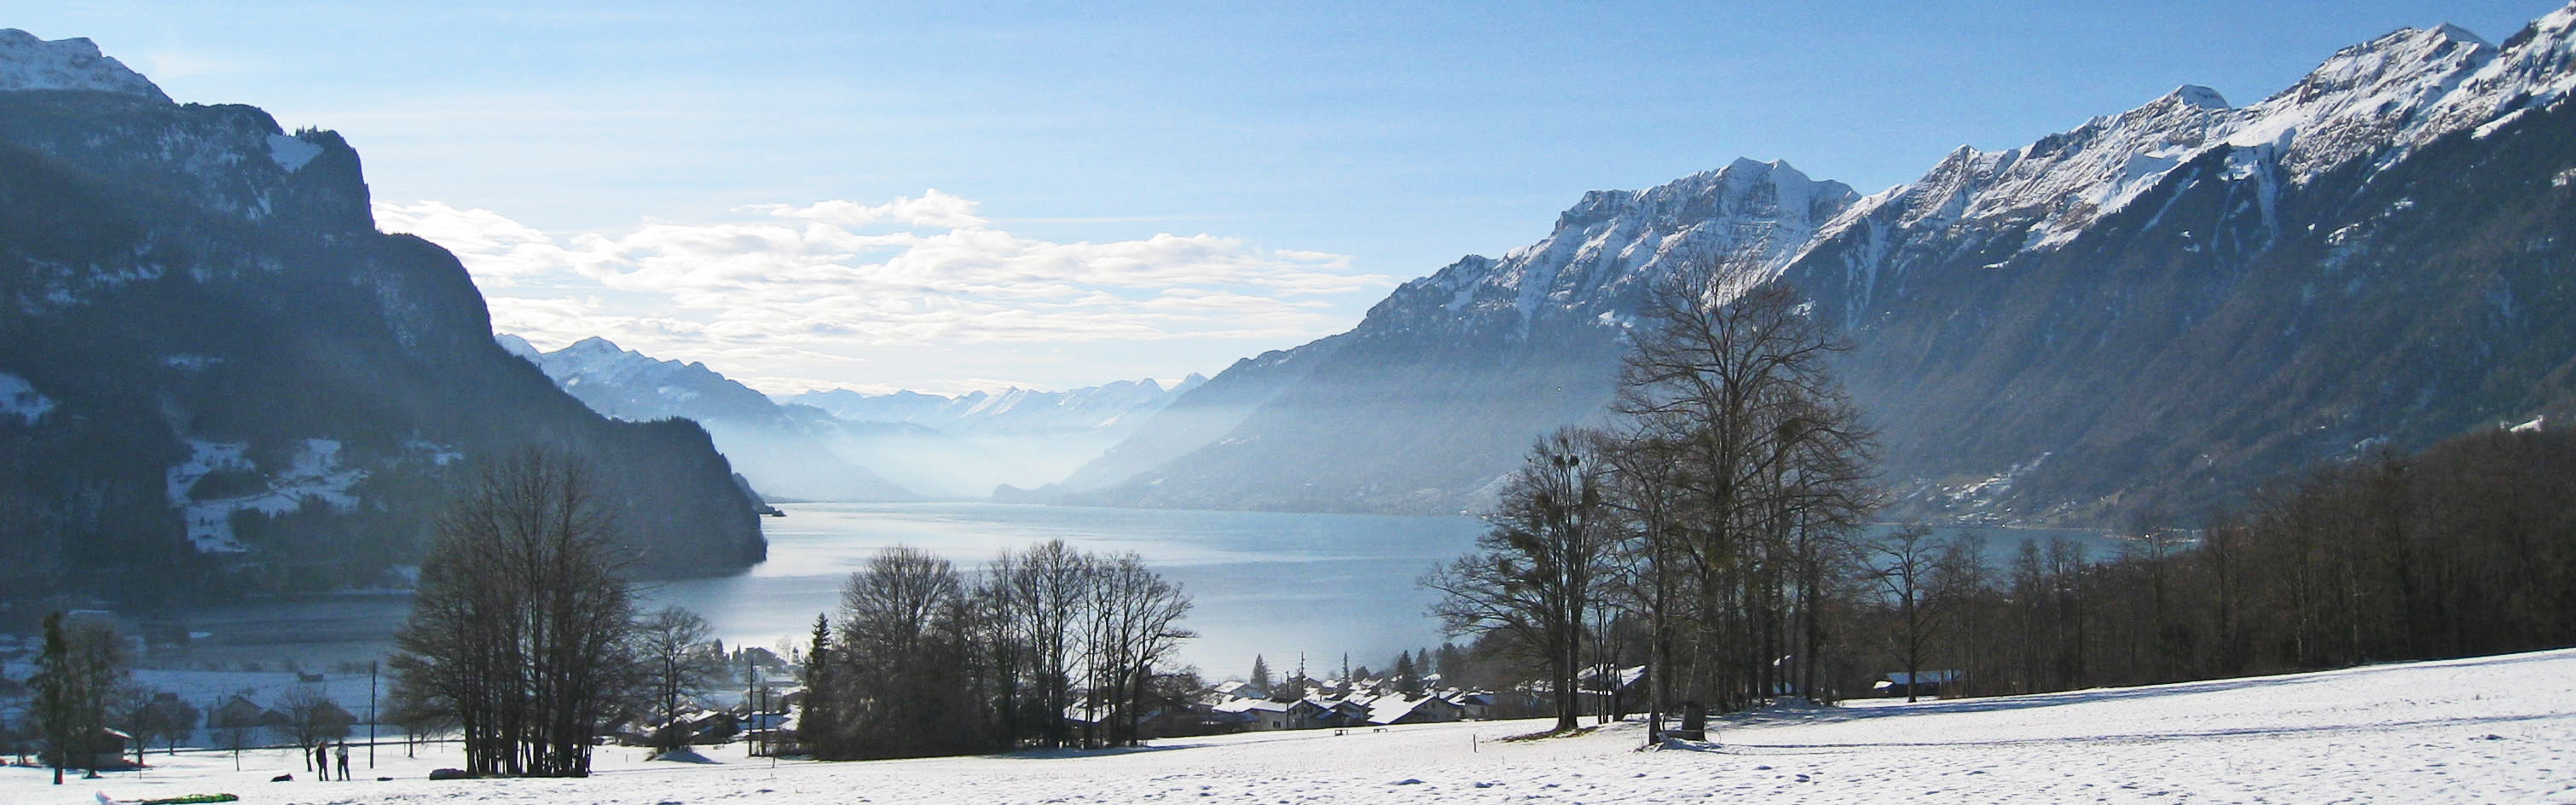 Immobilien in Interlaken - Brienz (5).jpg